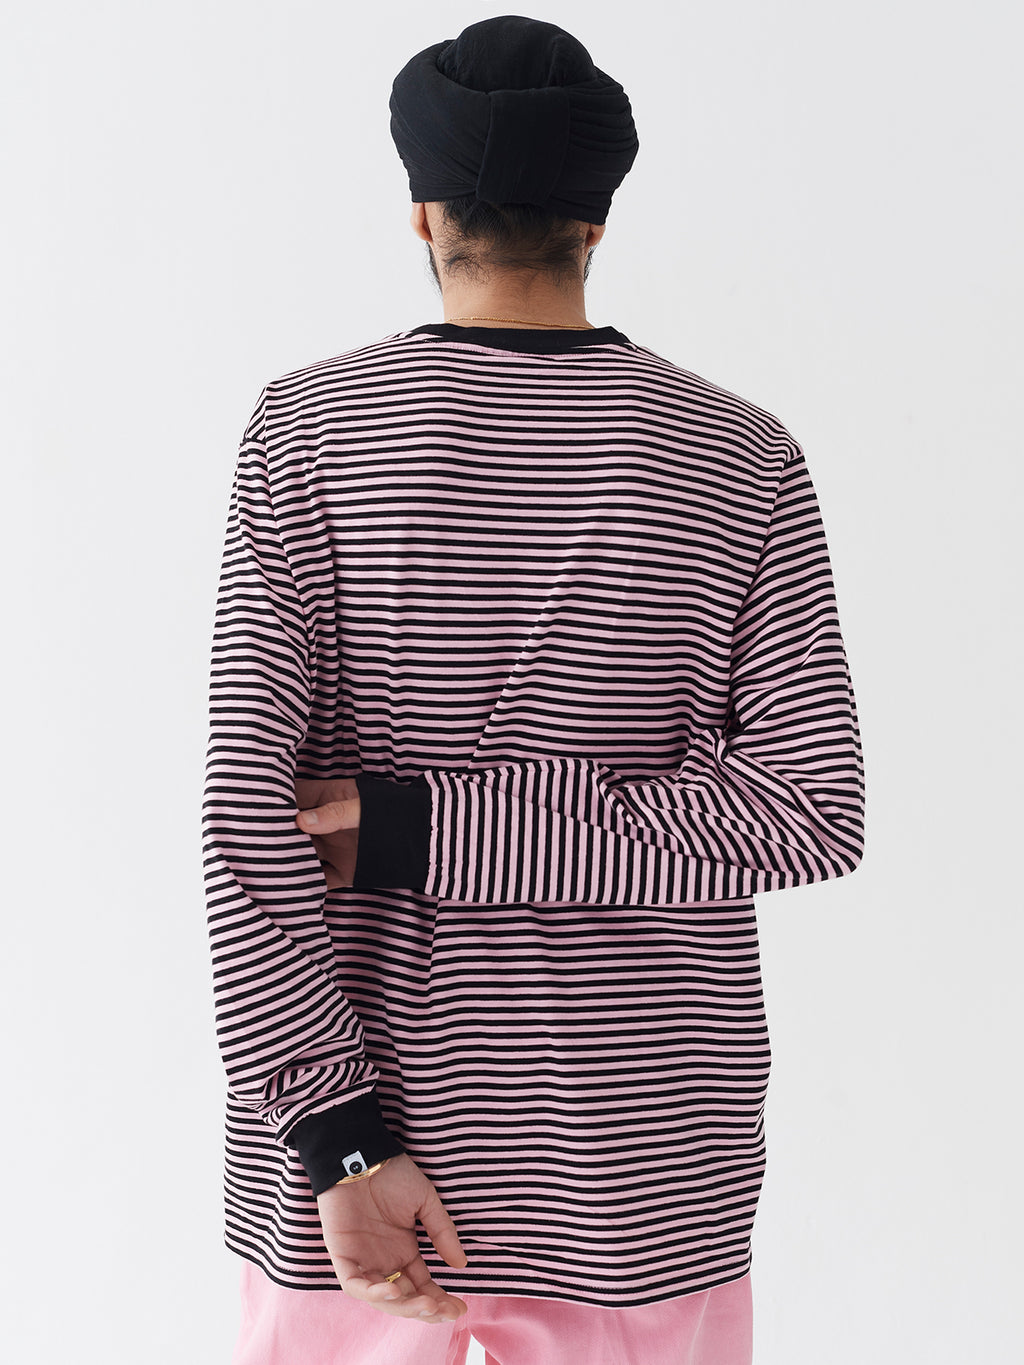 LO Mens Long Sleeve Stripy Tee